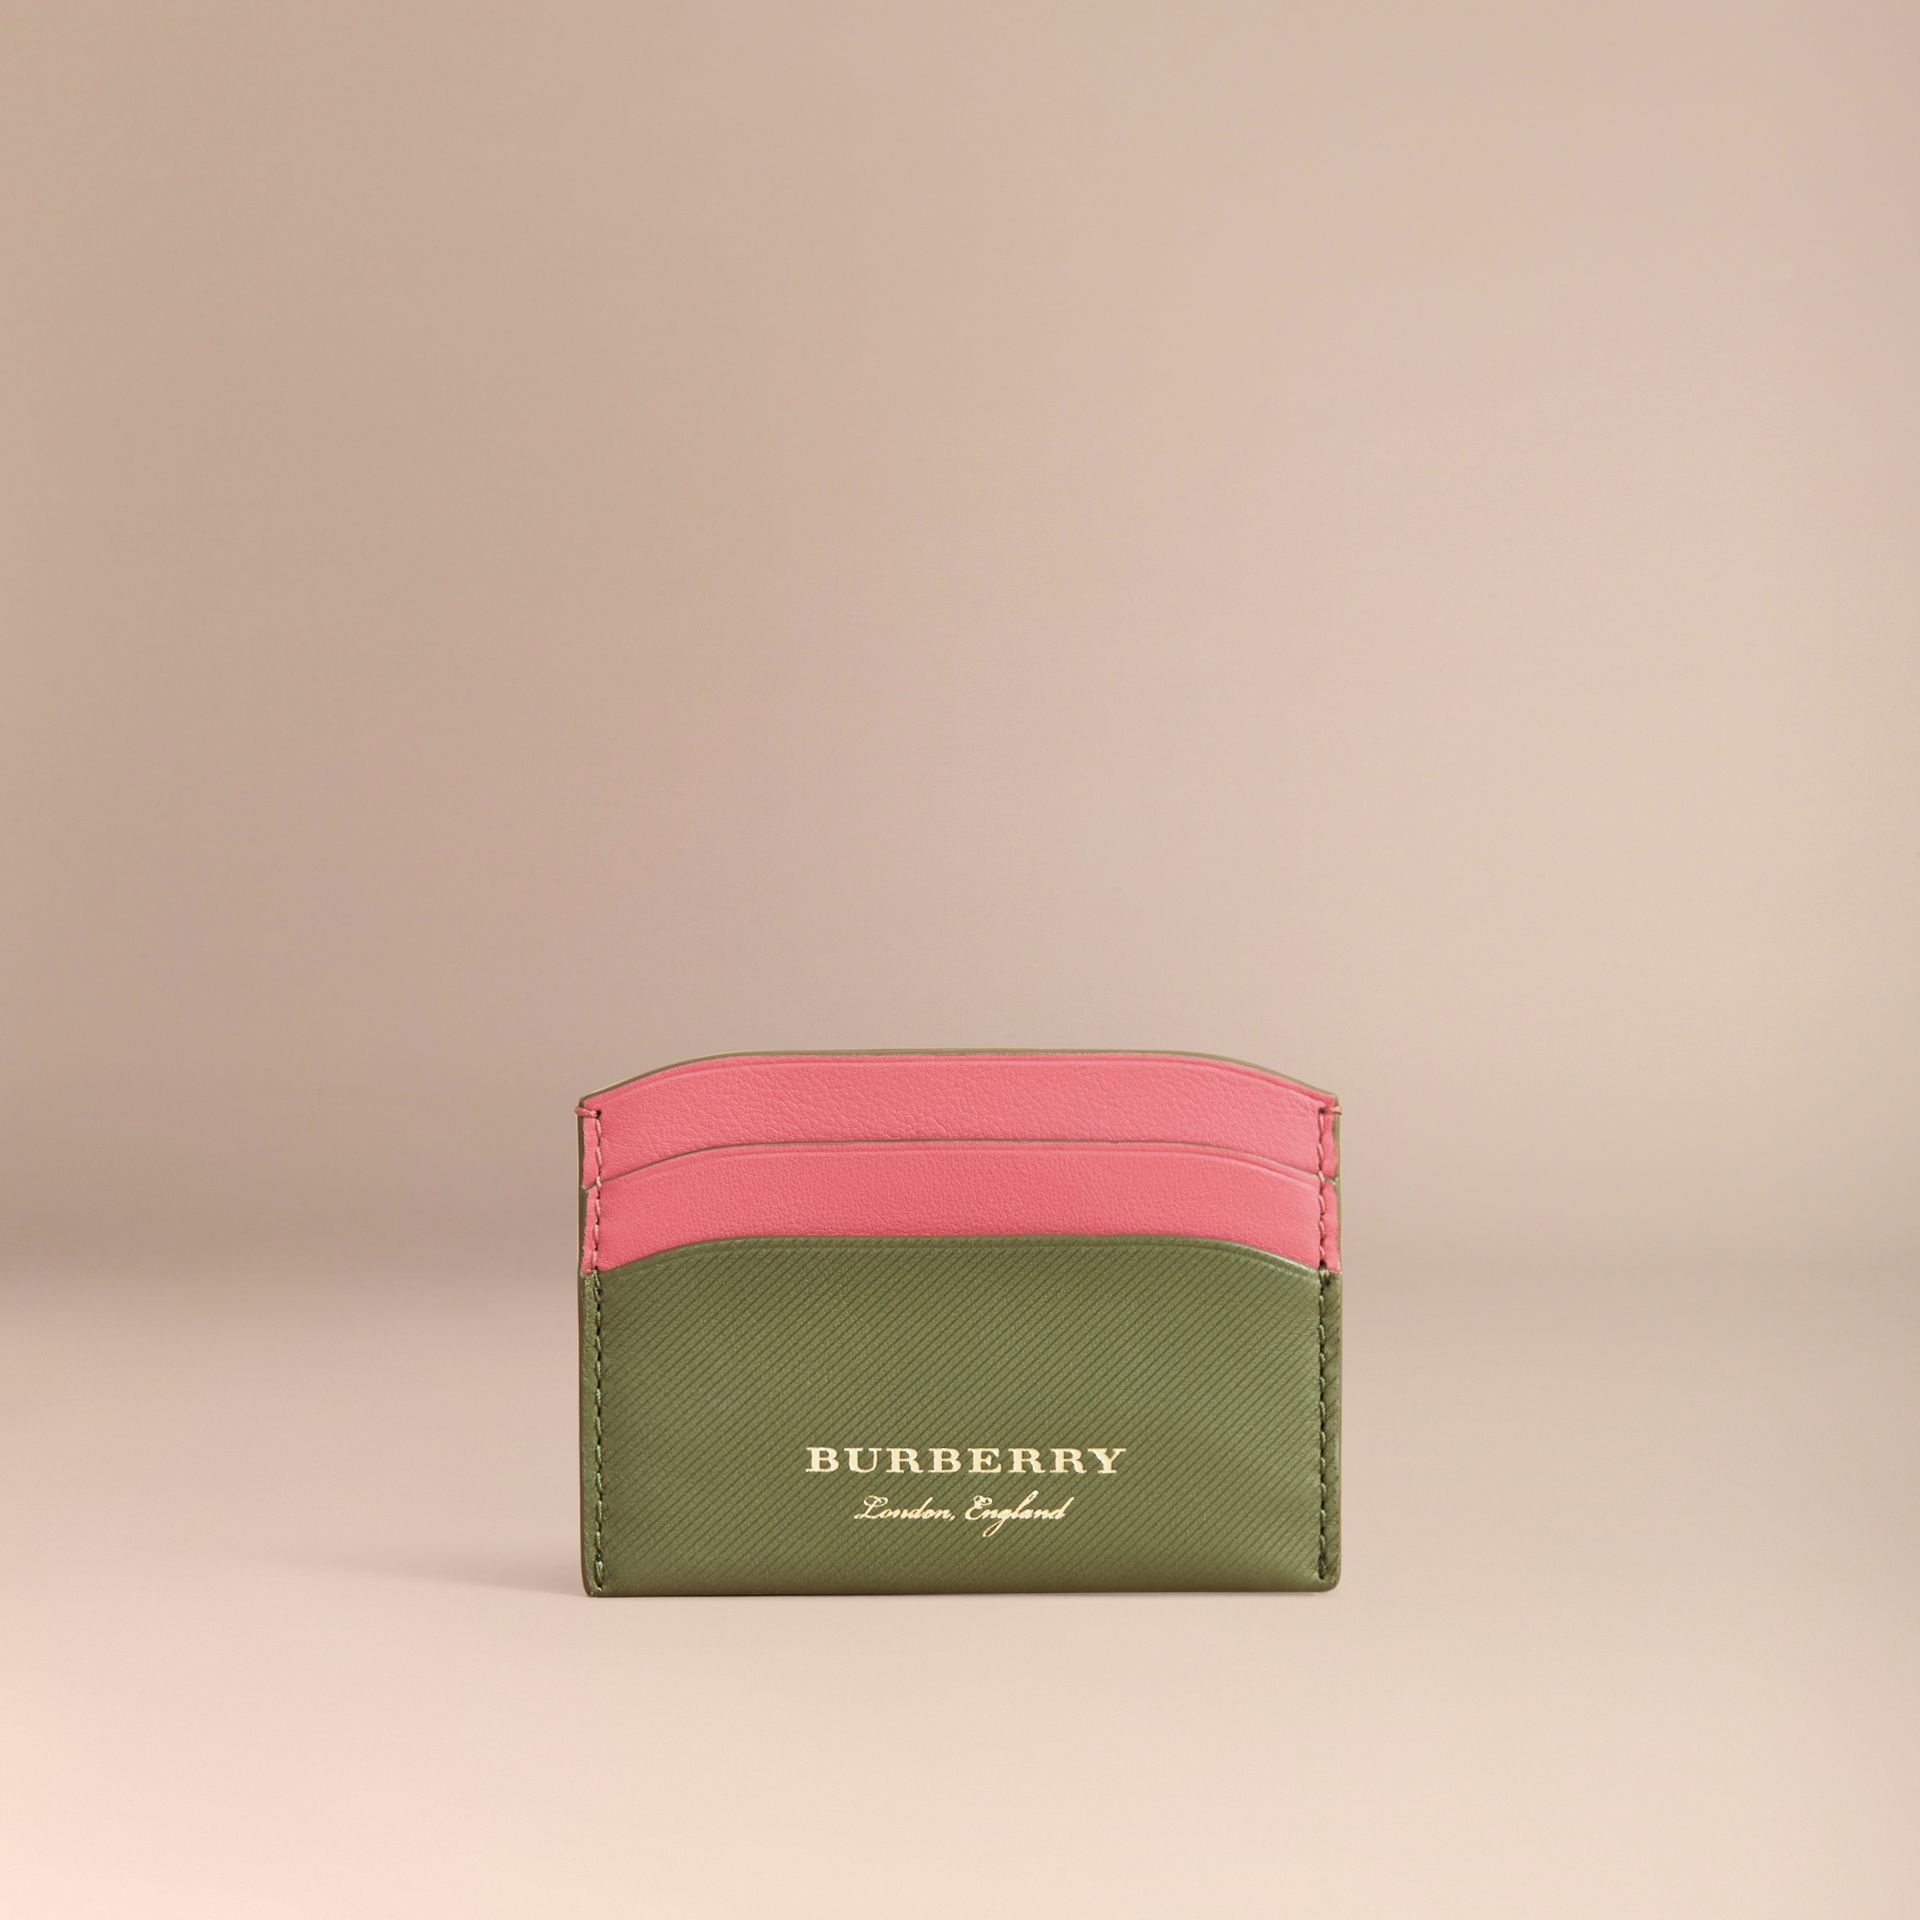 Two-tone Trench Leather Card Case in Mss Green/ Blsm Pink - Women | Burberry - gallery image 5